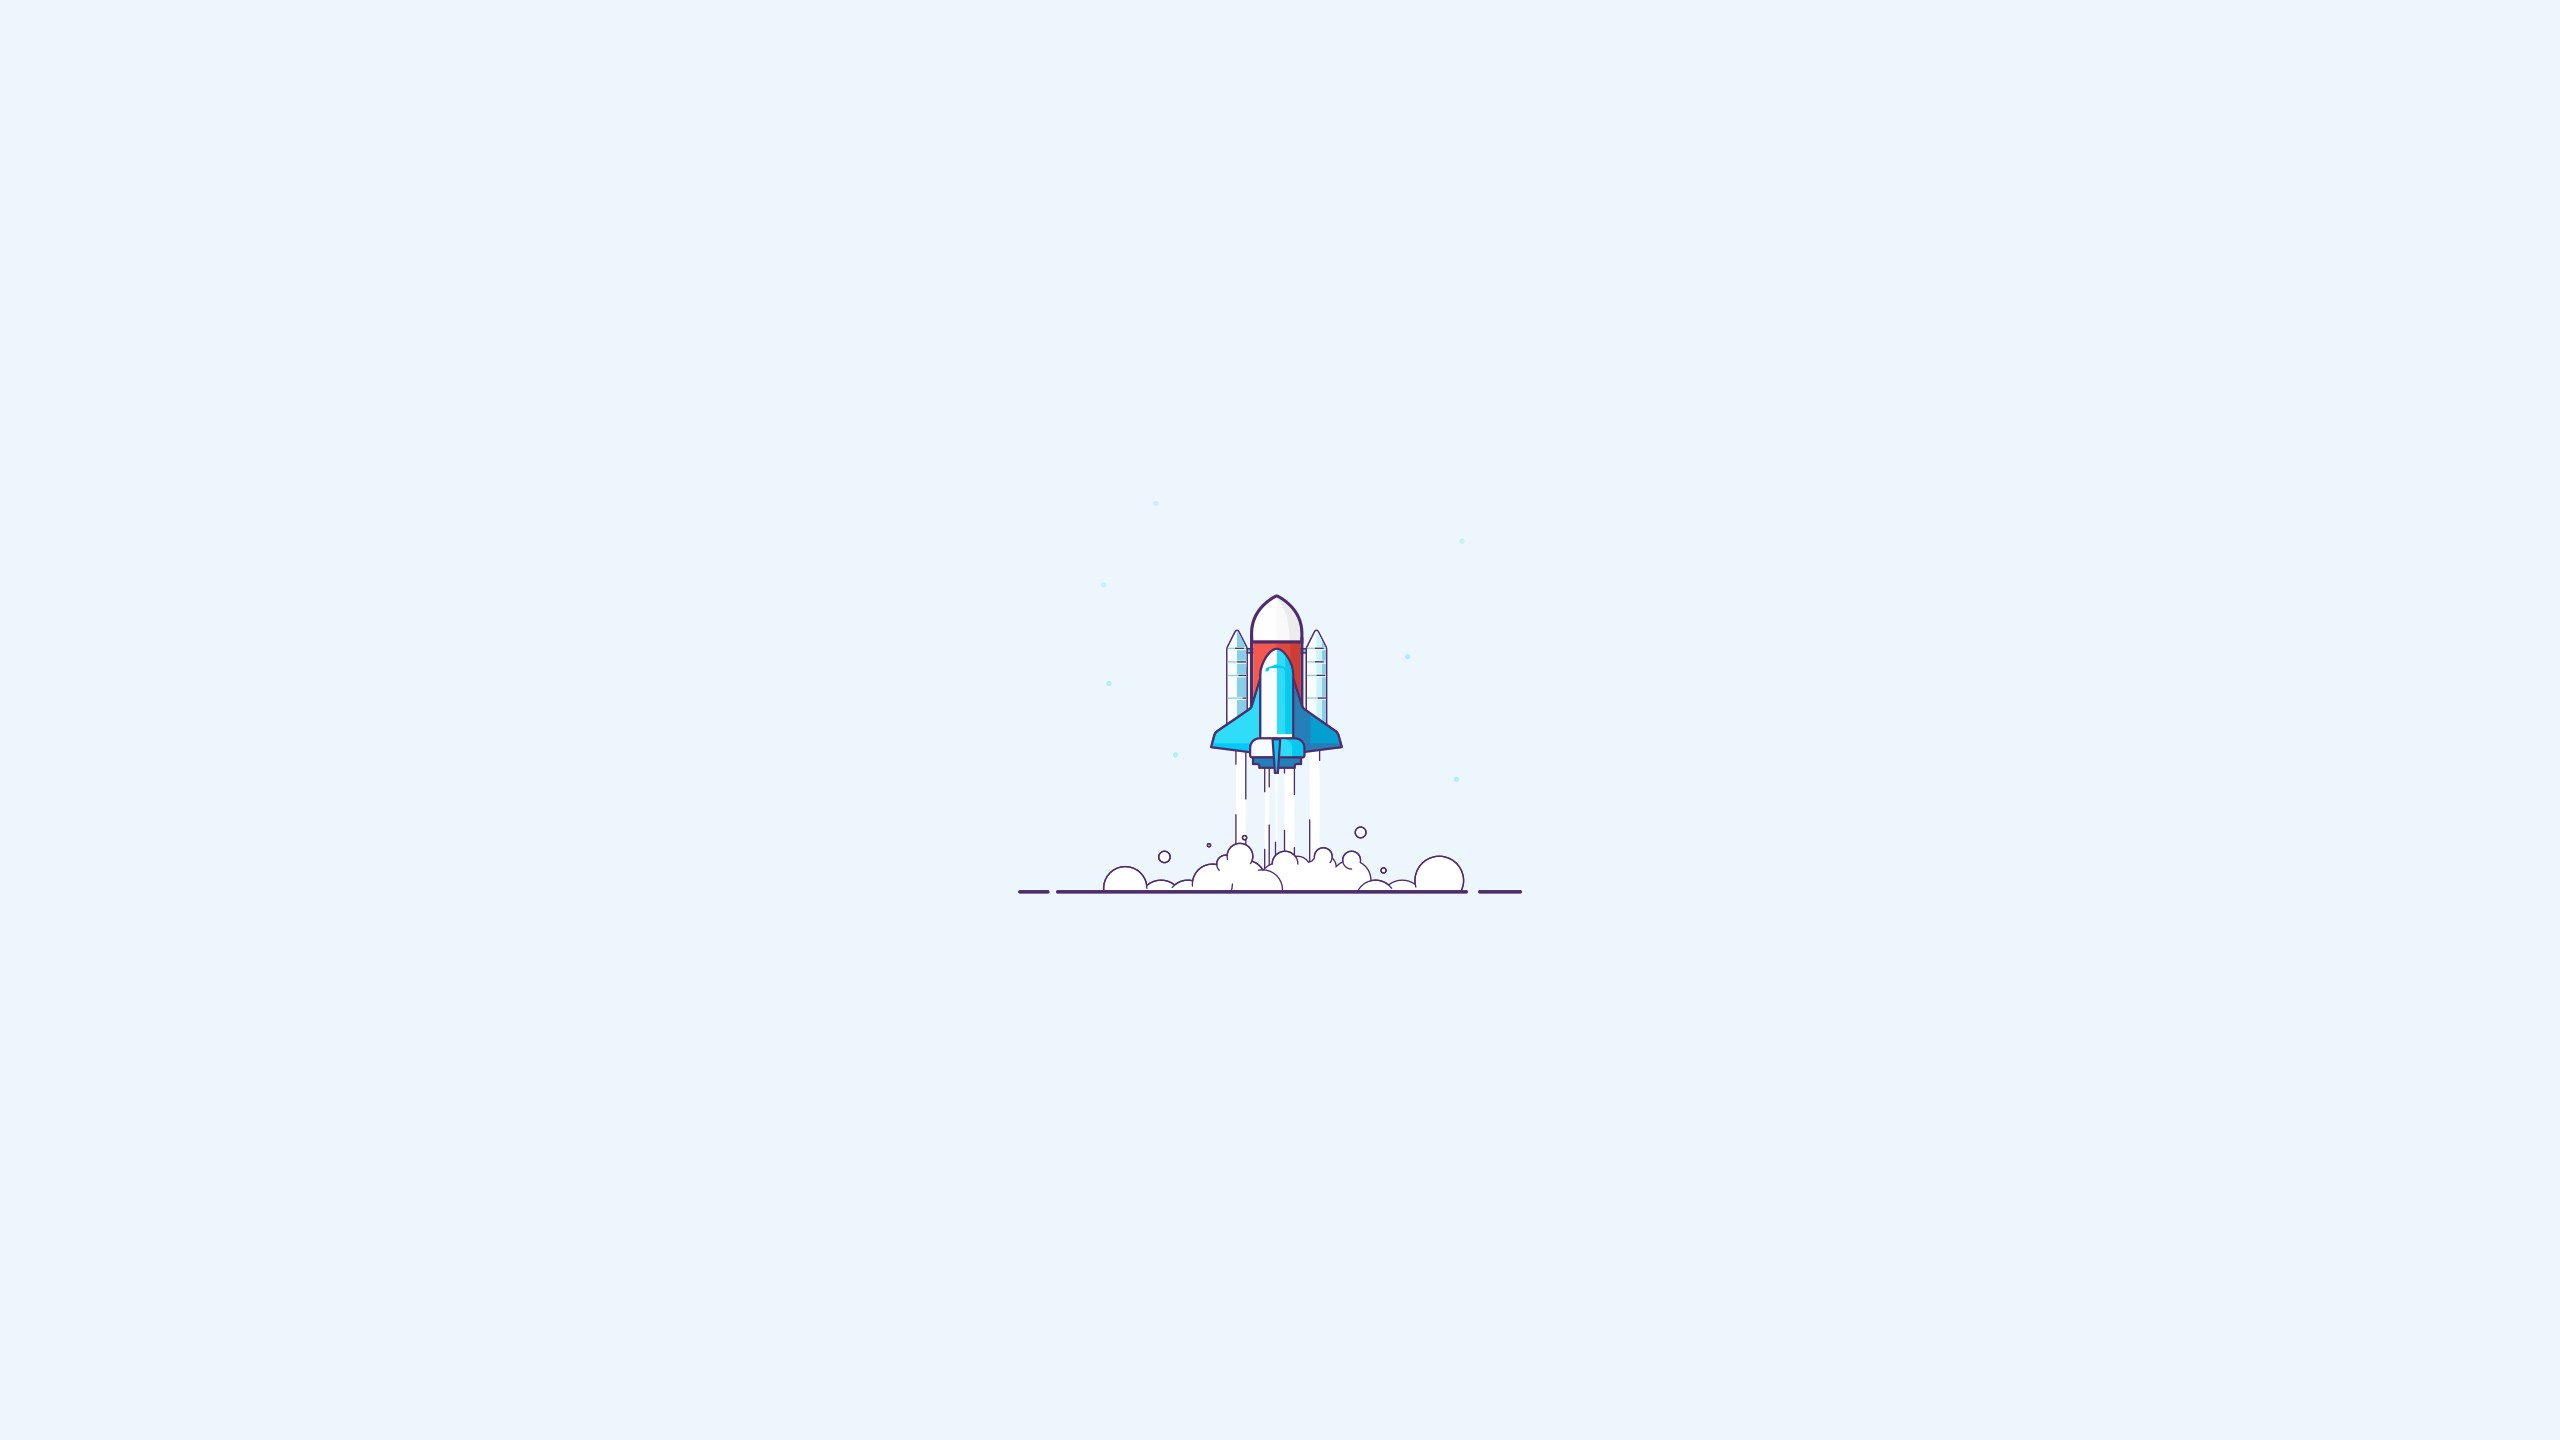 General 2560x1440 illustration rocket lift off minimalism space simple background white background